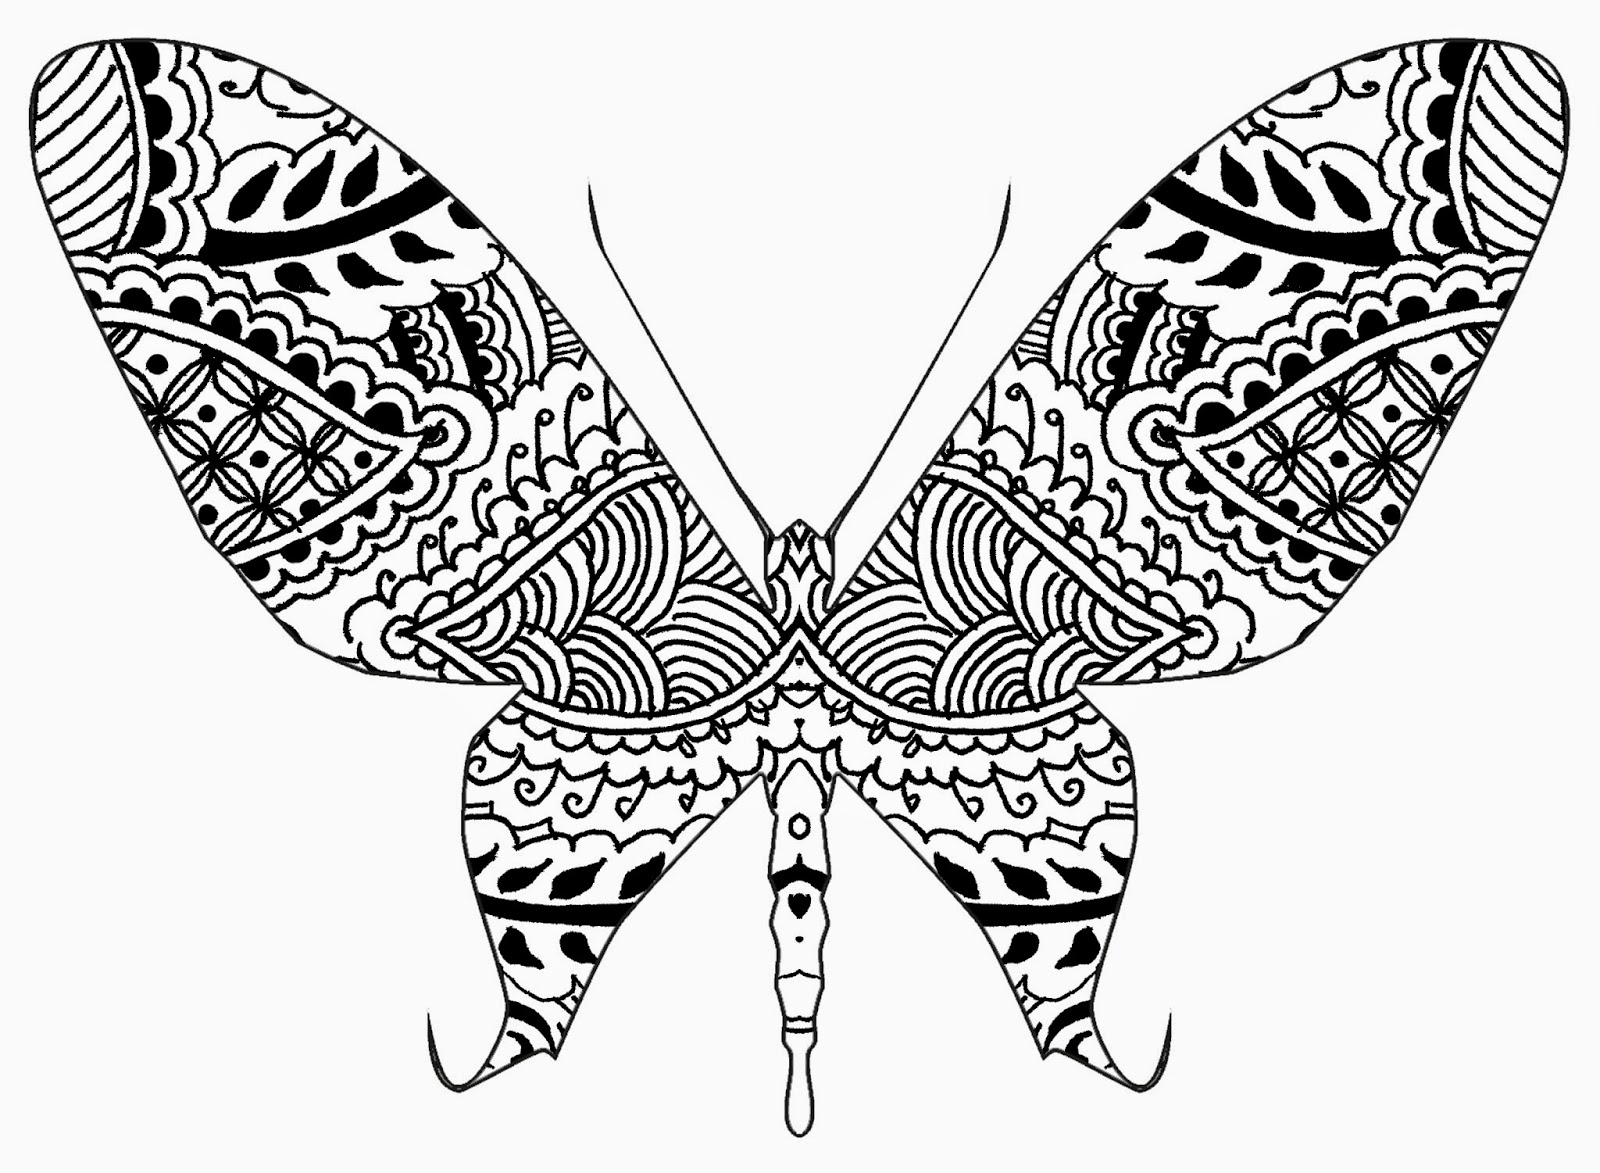 Brendan Burns Art Henna And Zentangle Inspired Butterflies 8